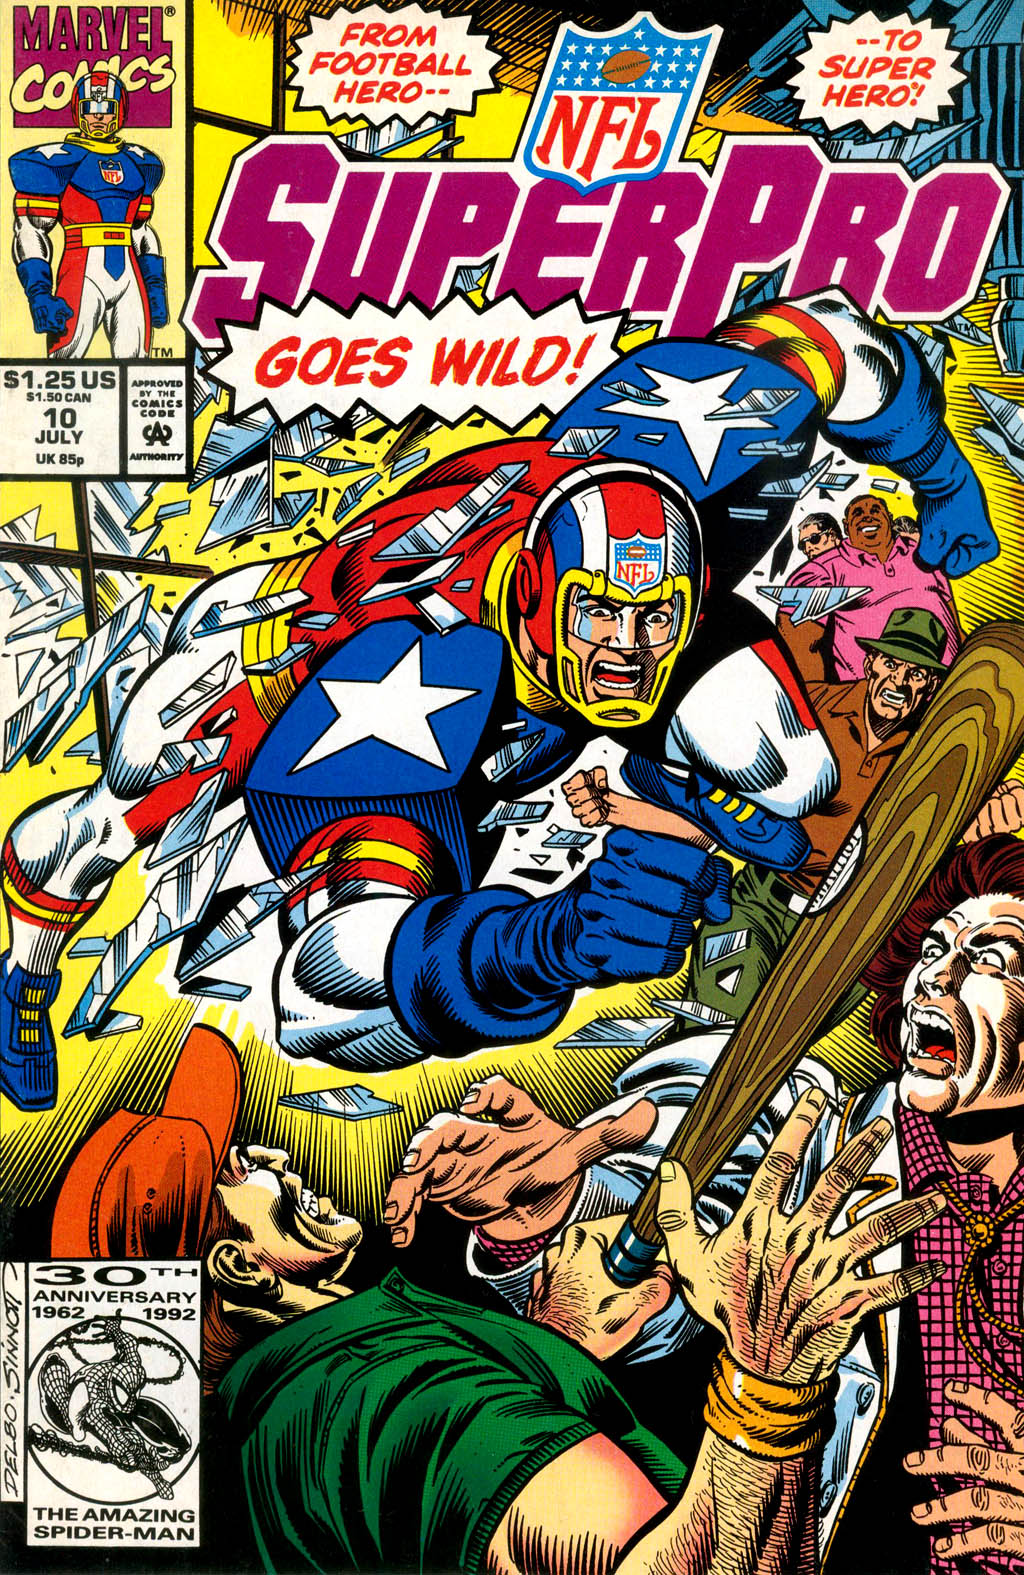 NFL SuperPro (1991) #10, cover penciled by Jose Delbo & inked by Joe Sinnott.